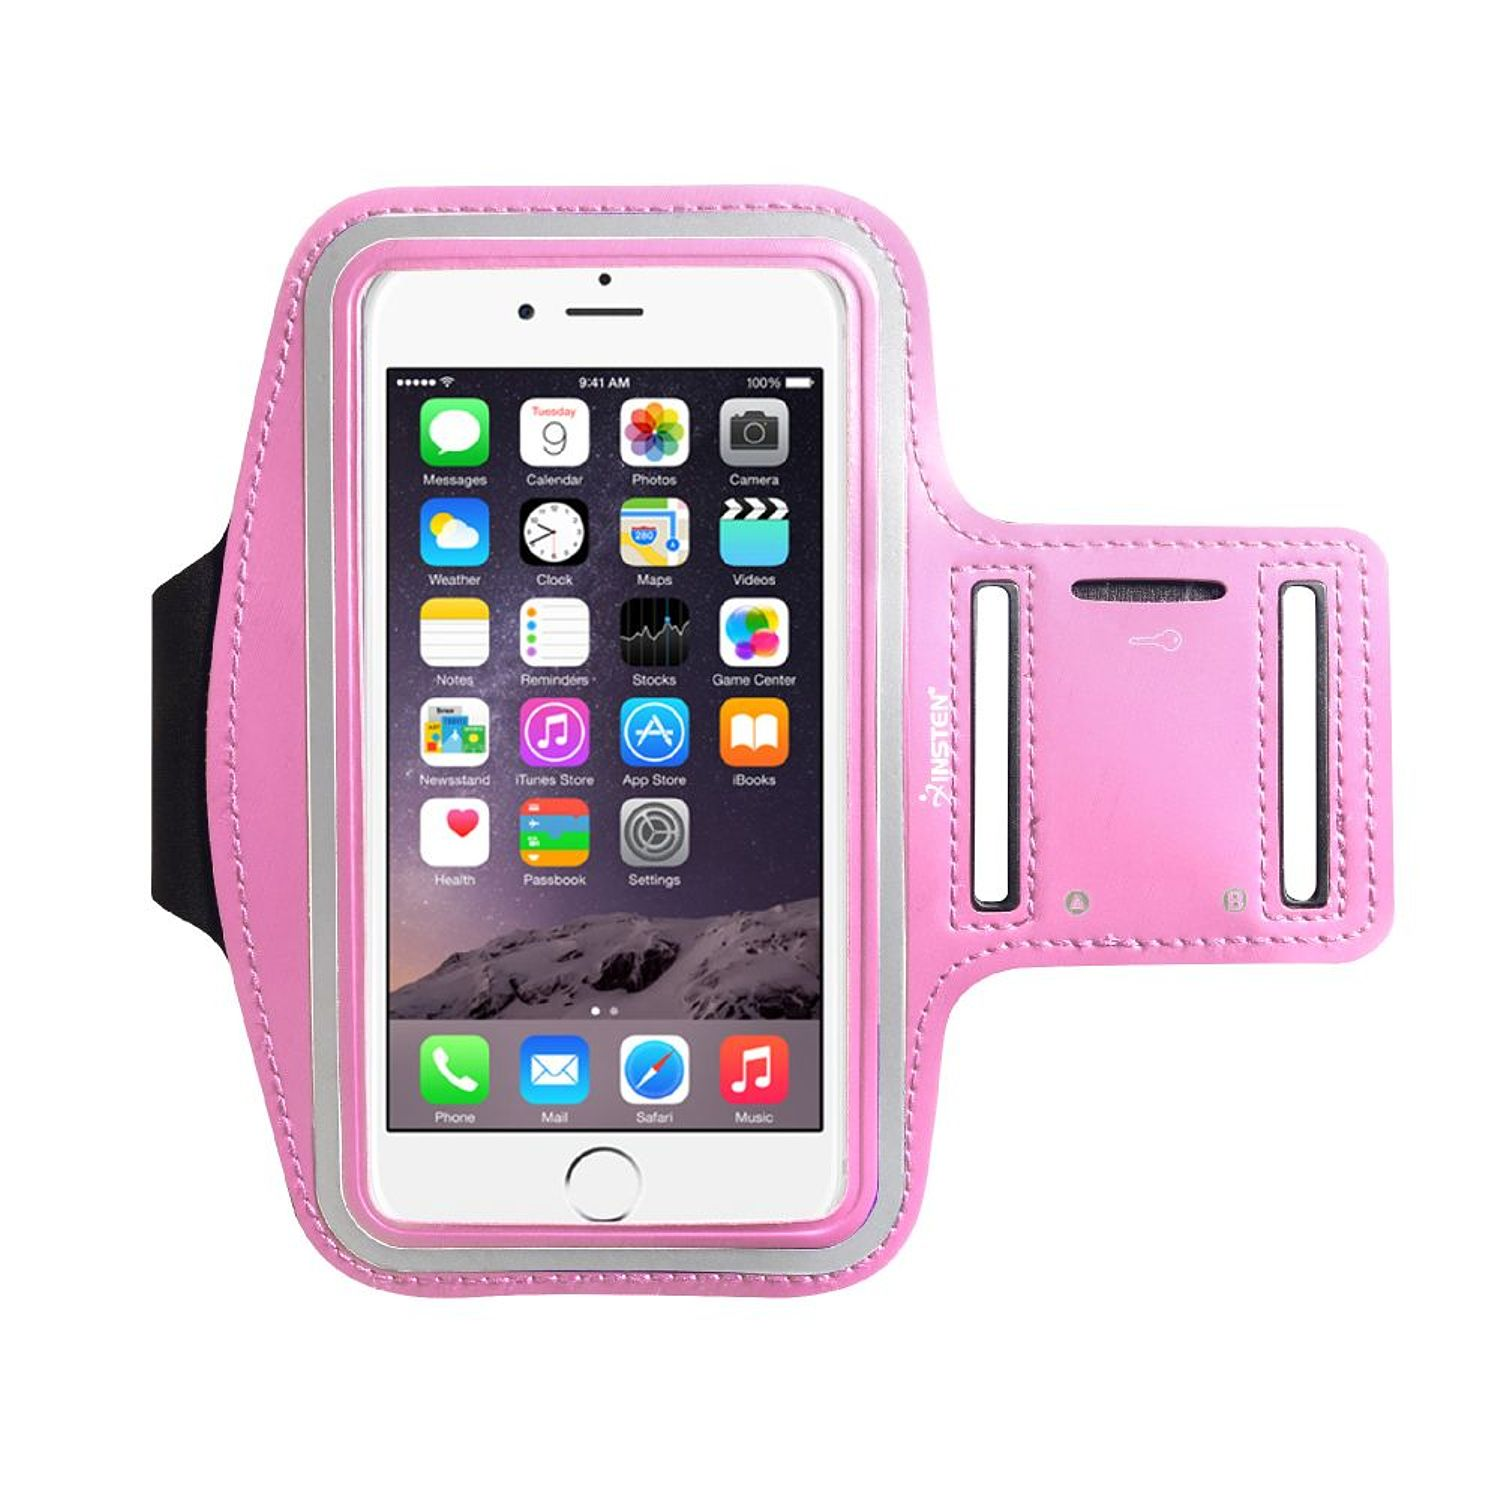 "Insten Pink Sports Workout Running Gym Armband Case For Apple iPhone 8 Plus 7 Plus X 6 Plus 6S Plus 5.5"" / Samsung Galaxy Note 8 7 5 4 3 S7 Edge S8 S9 S+ (with key Holder Storage slot)"